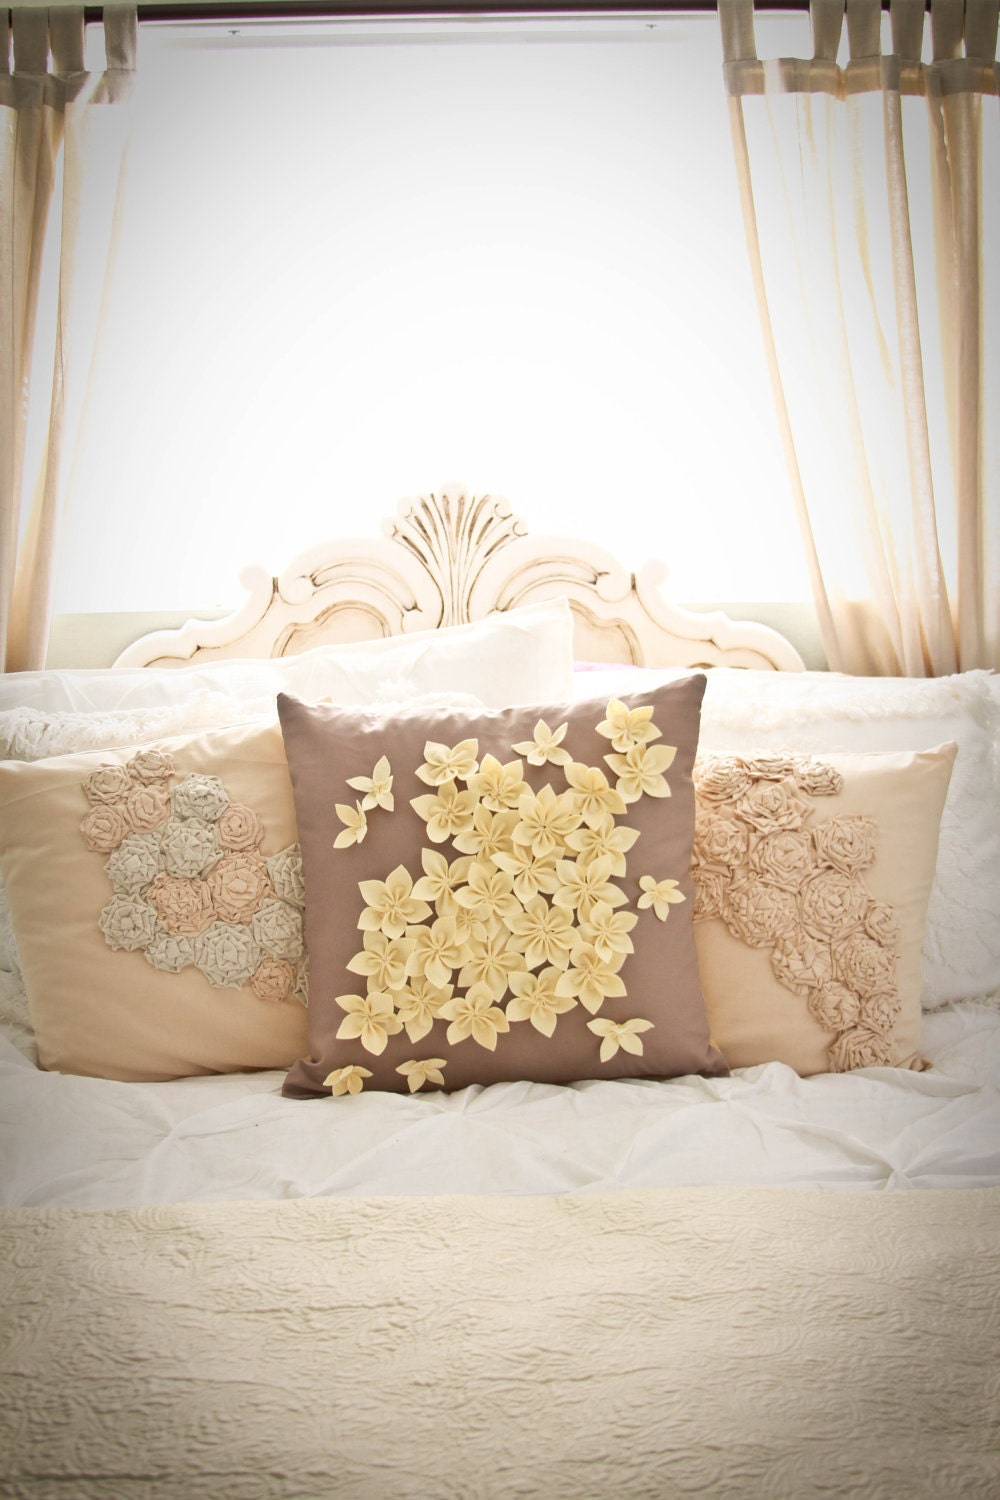 20x20 inch decorative pillow with handmade applique flowers